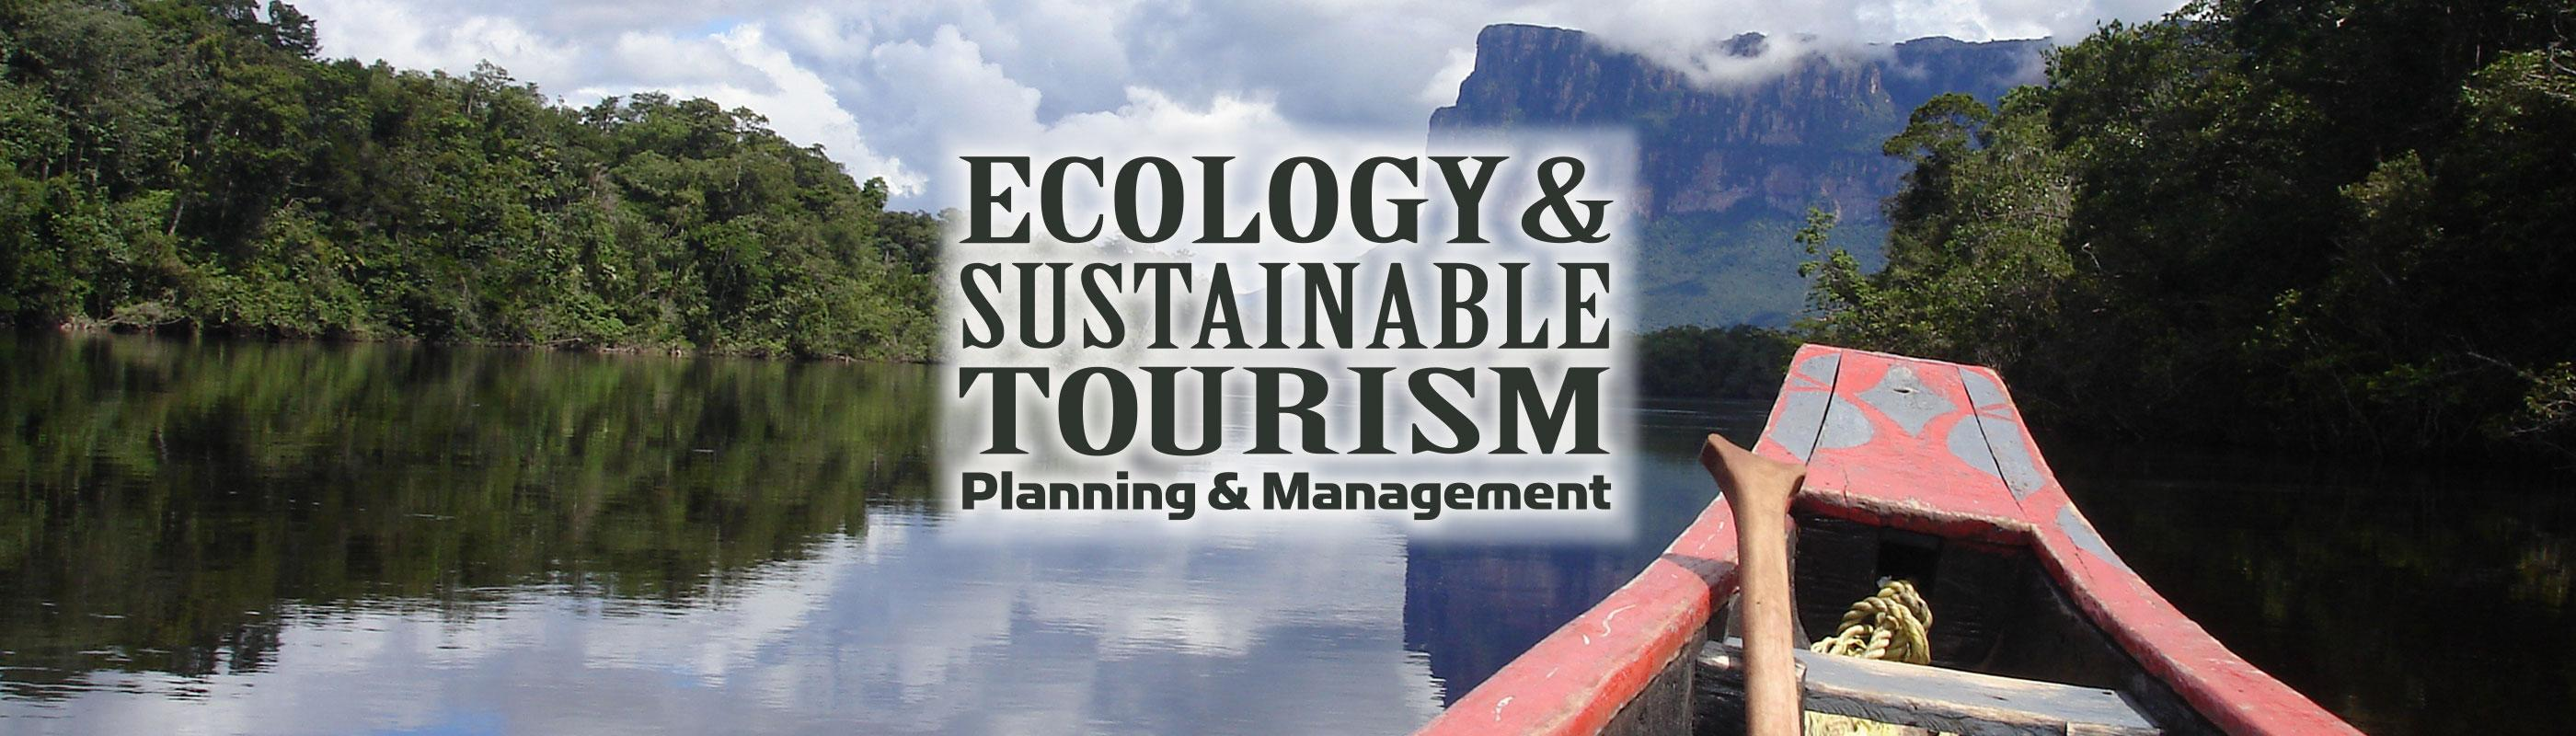 Ecology & Sustainable Tourism Planning & Management